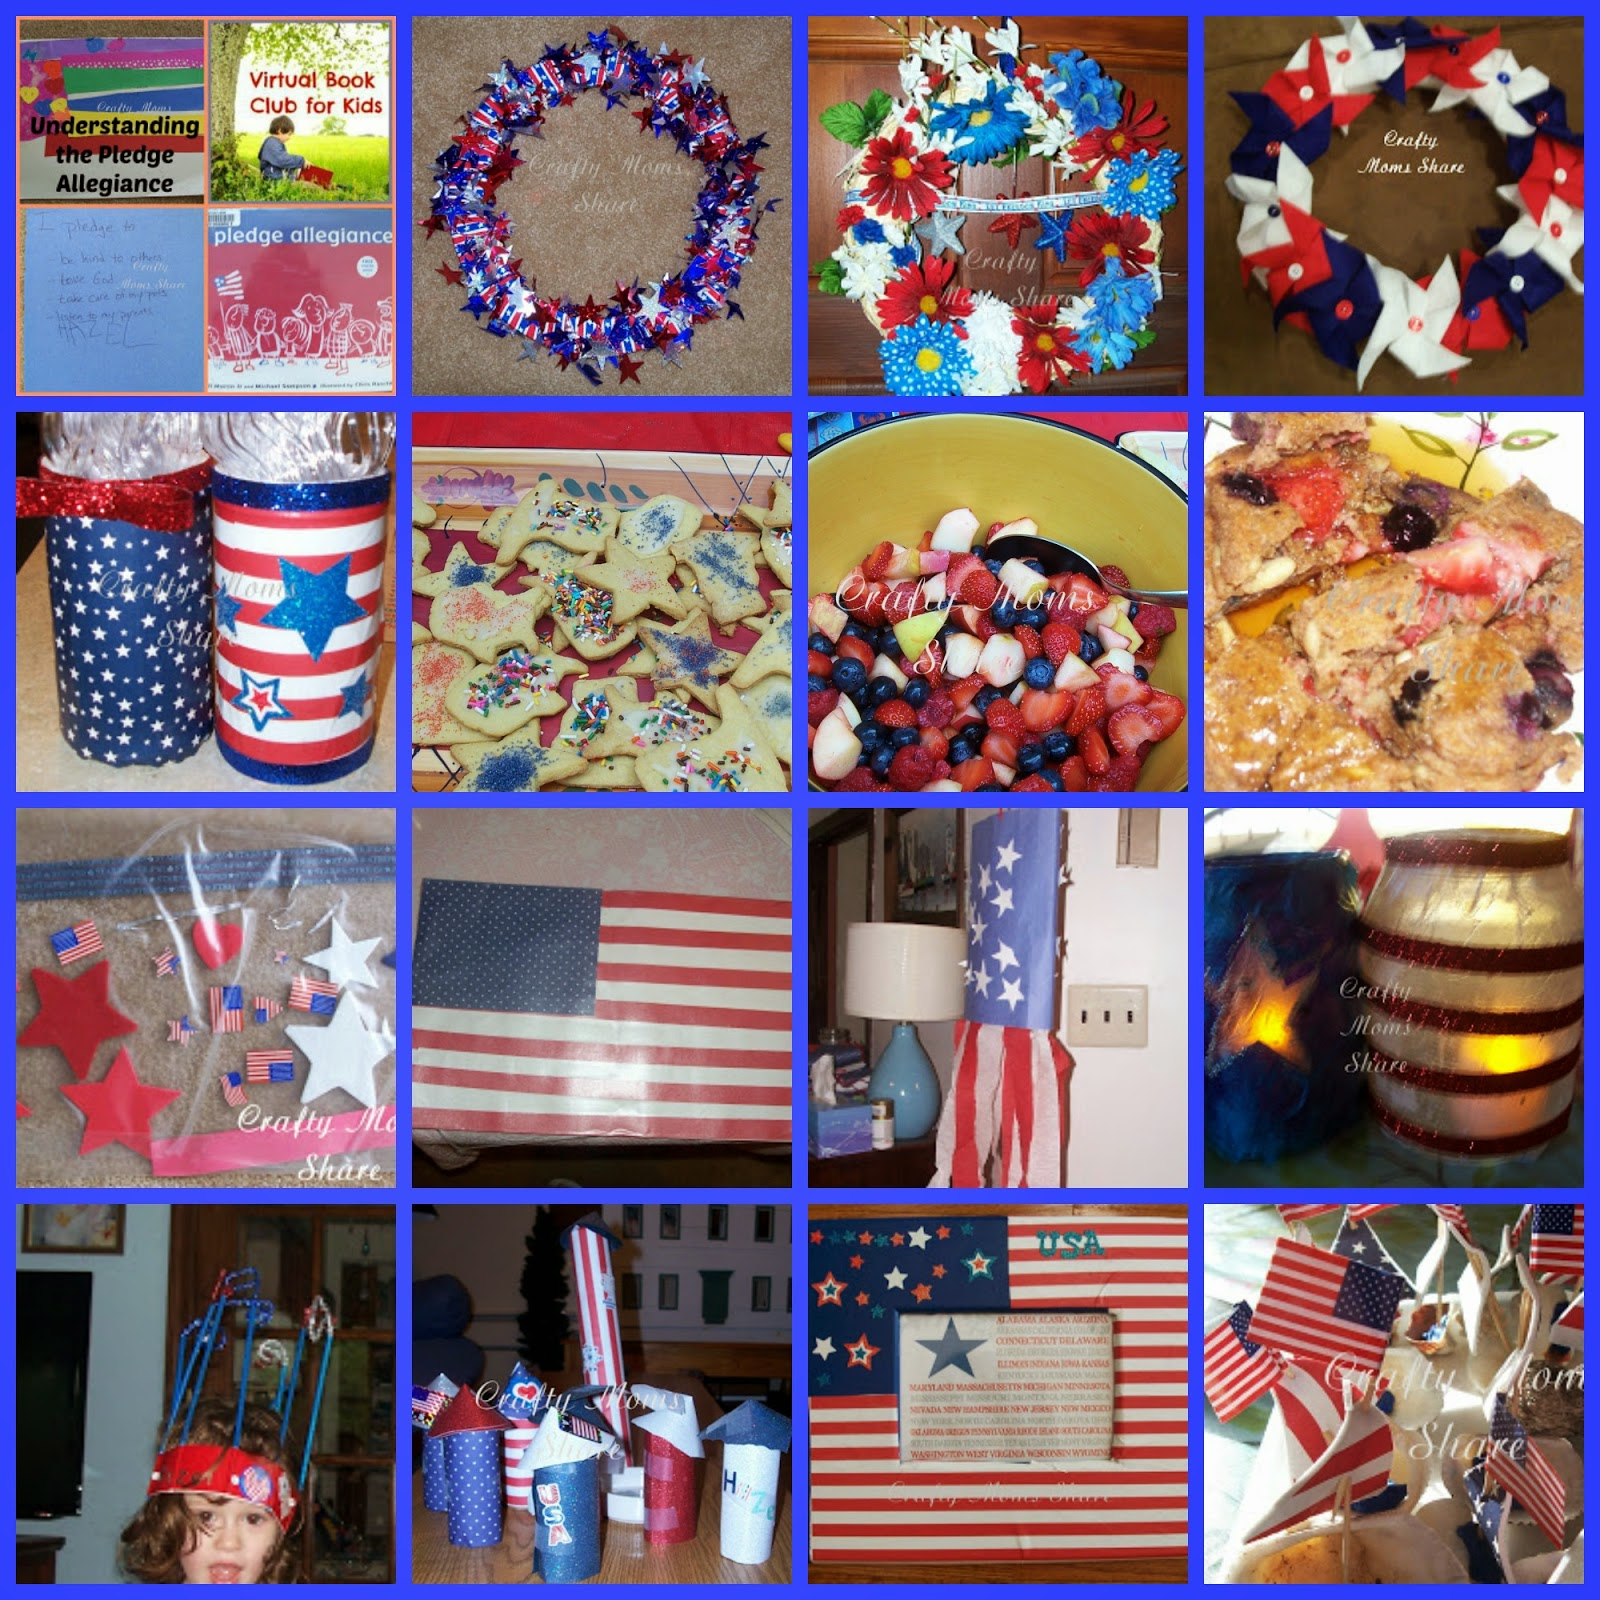 http://craftymomsshare.blogspot.com/2014/05/happy-memorial-day-patriotic-craft-and.html